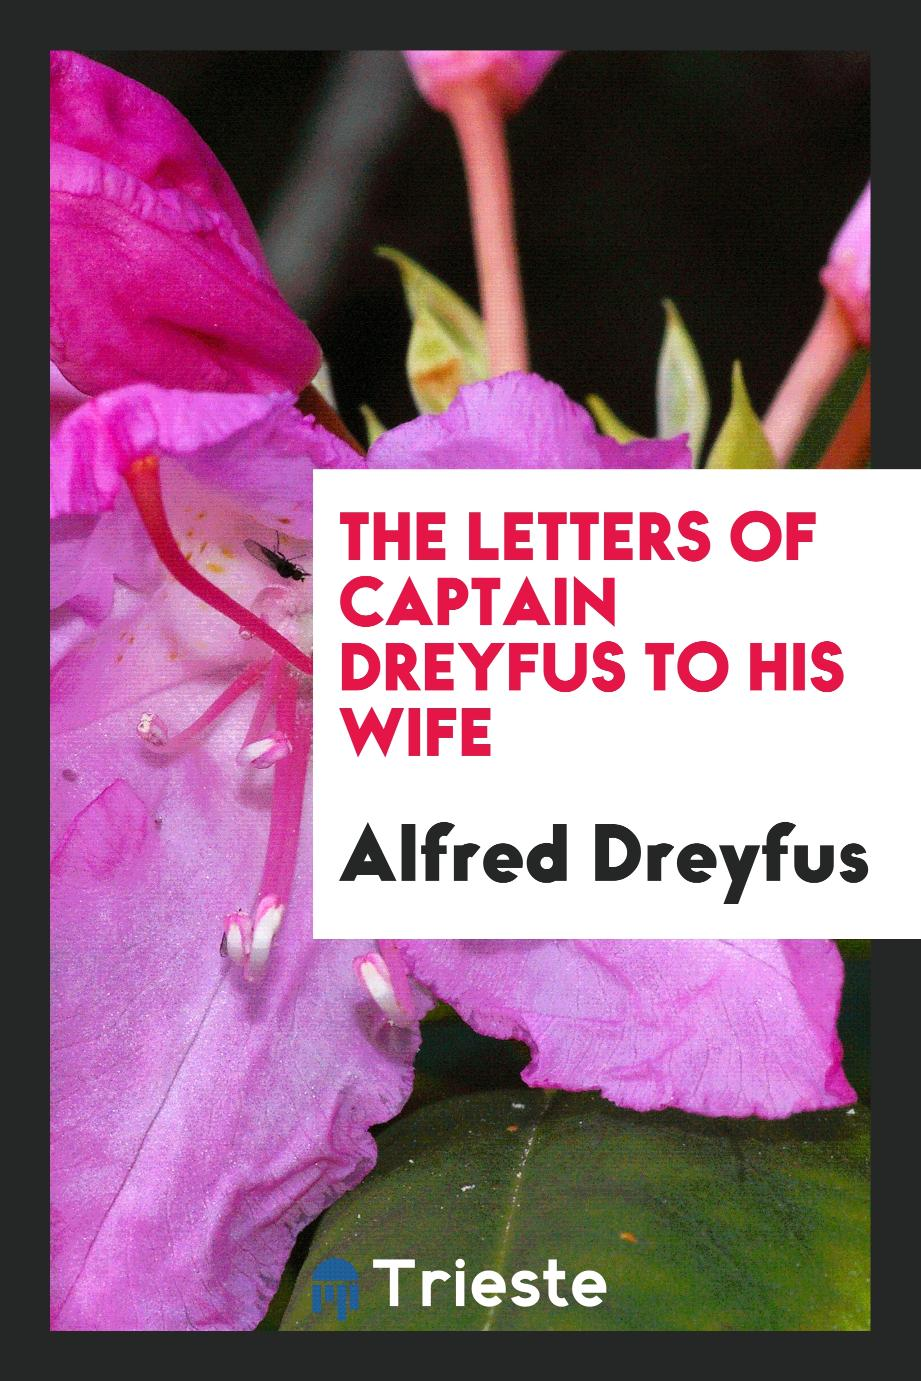 The letters of Captain Dreyfus to his wife